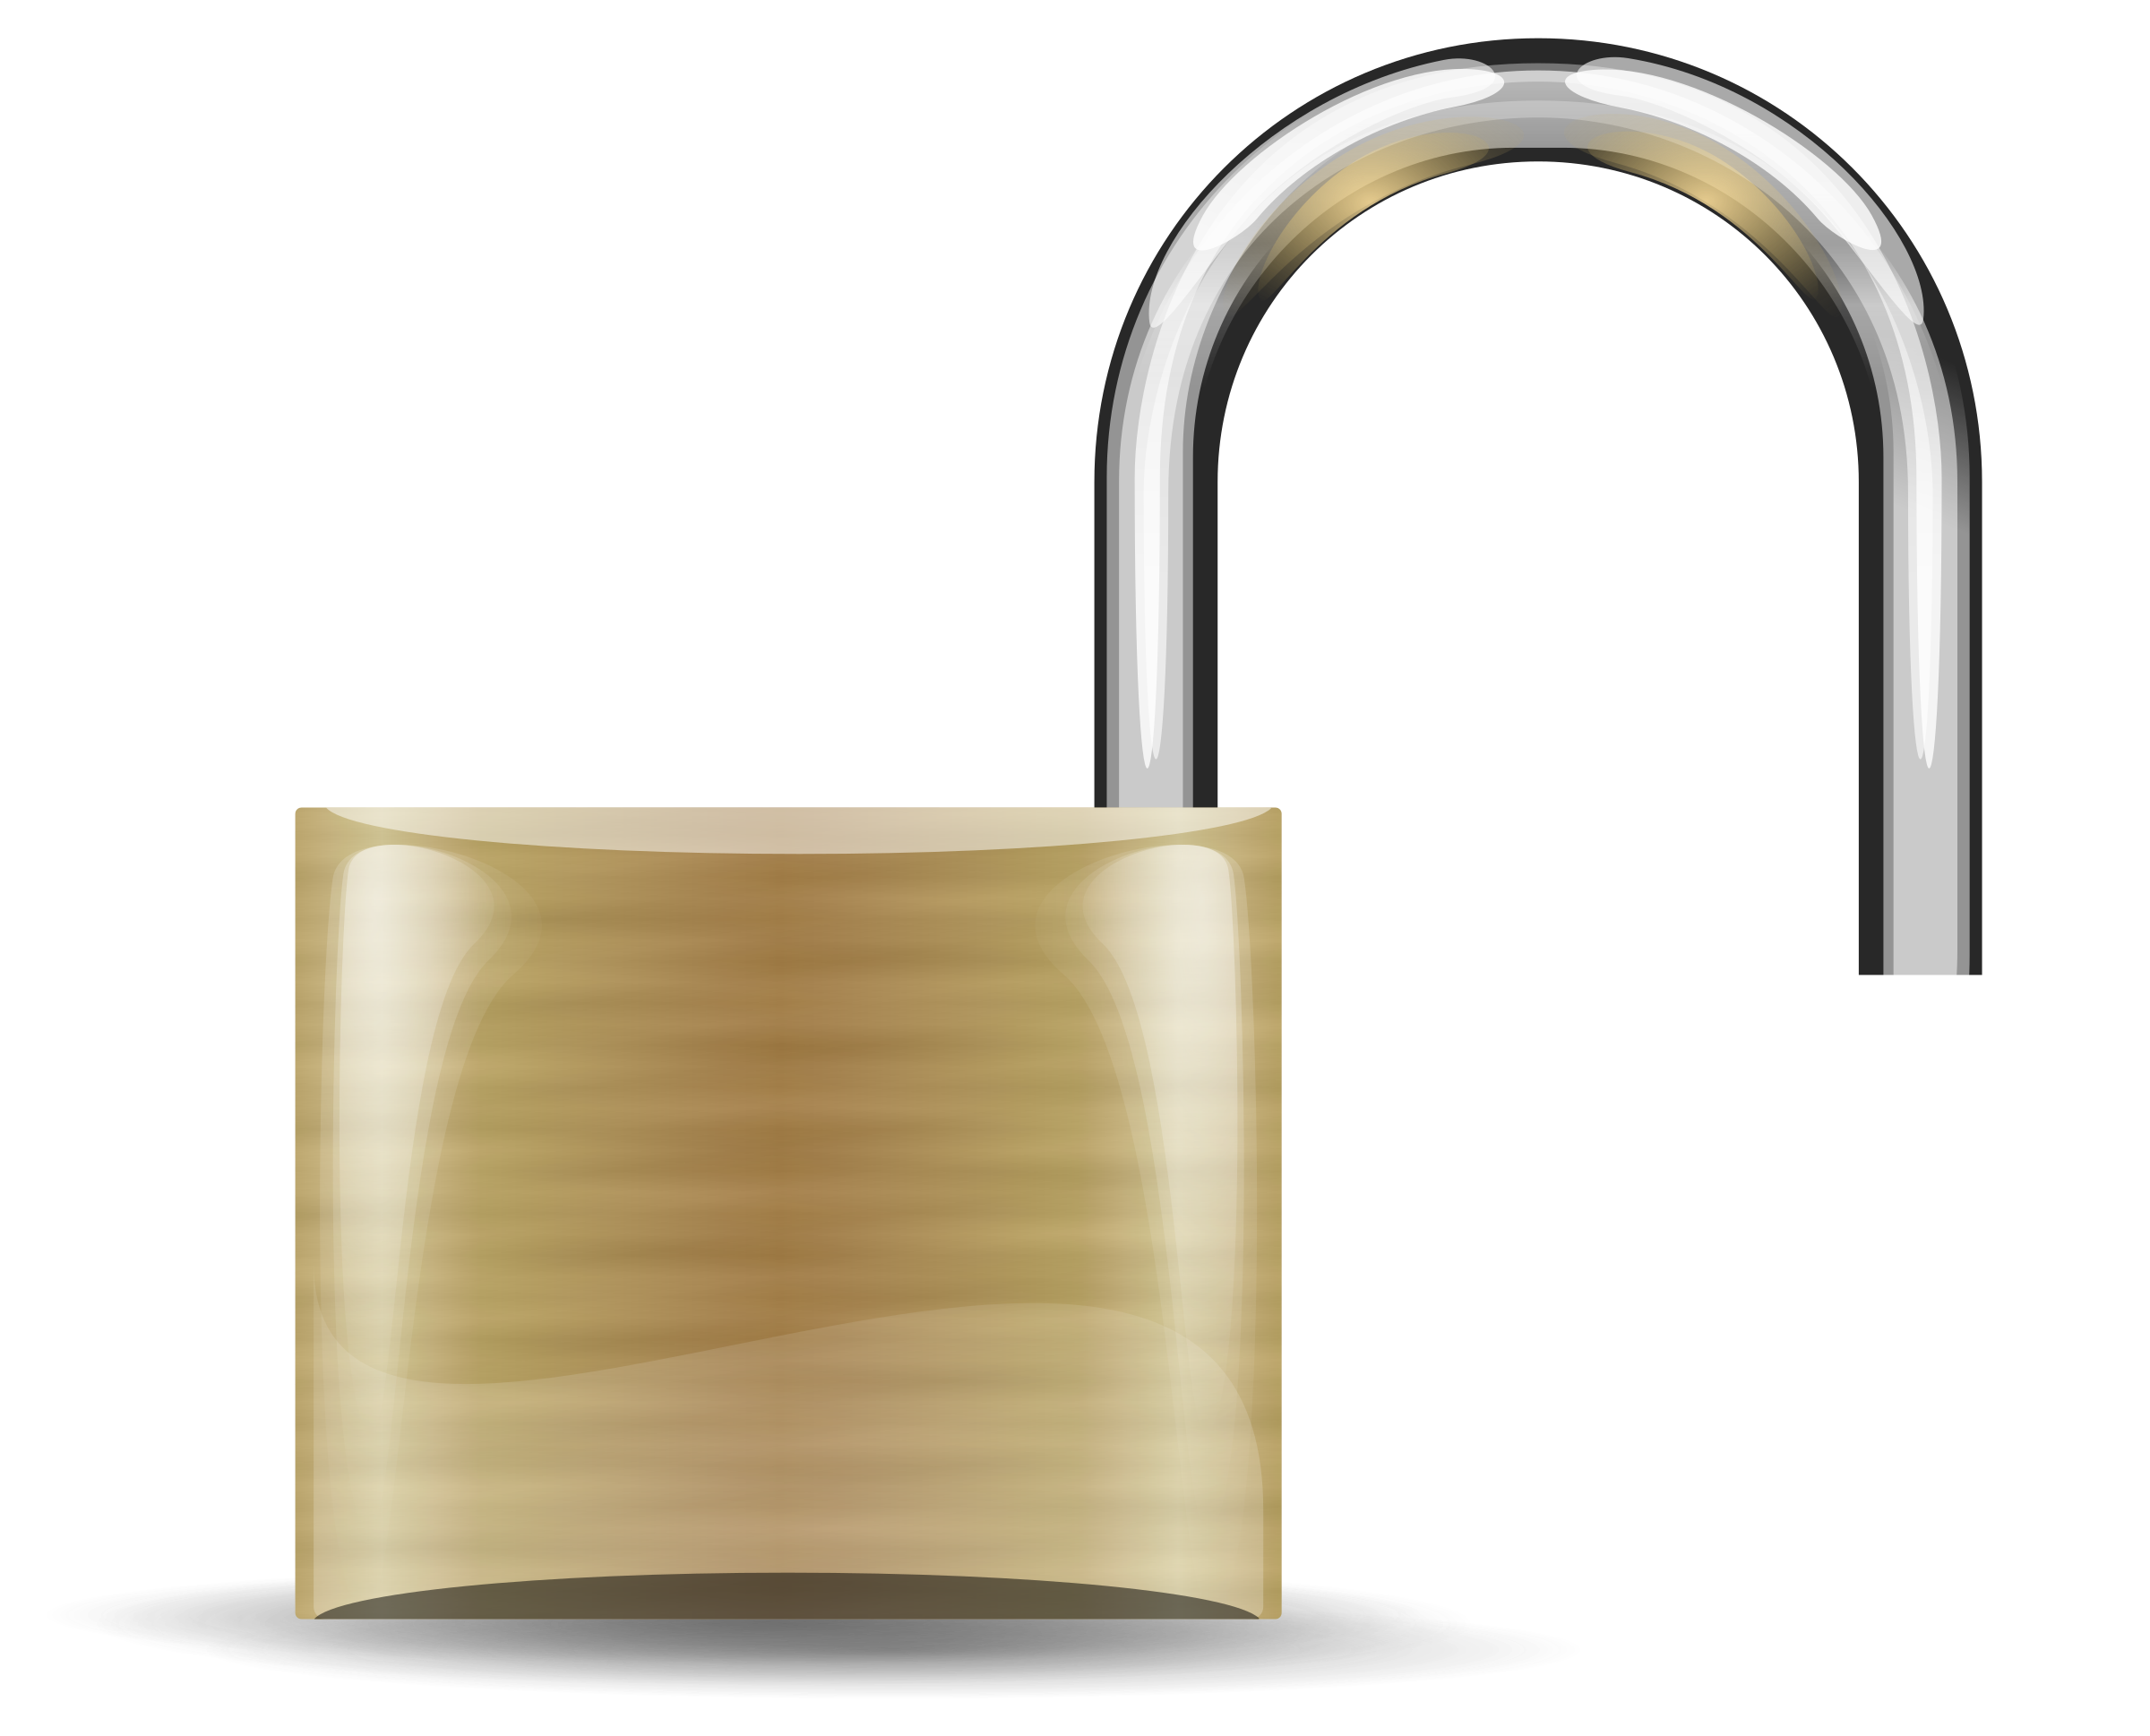 Opened image png. Lock clipart big